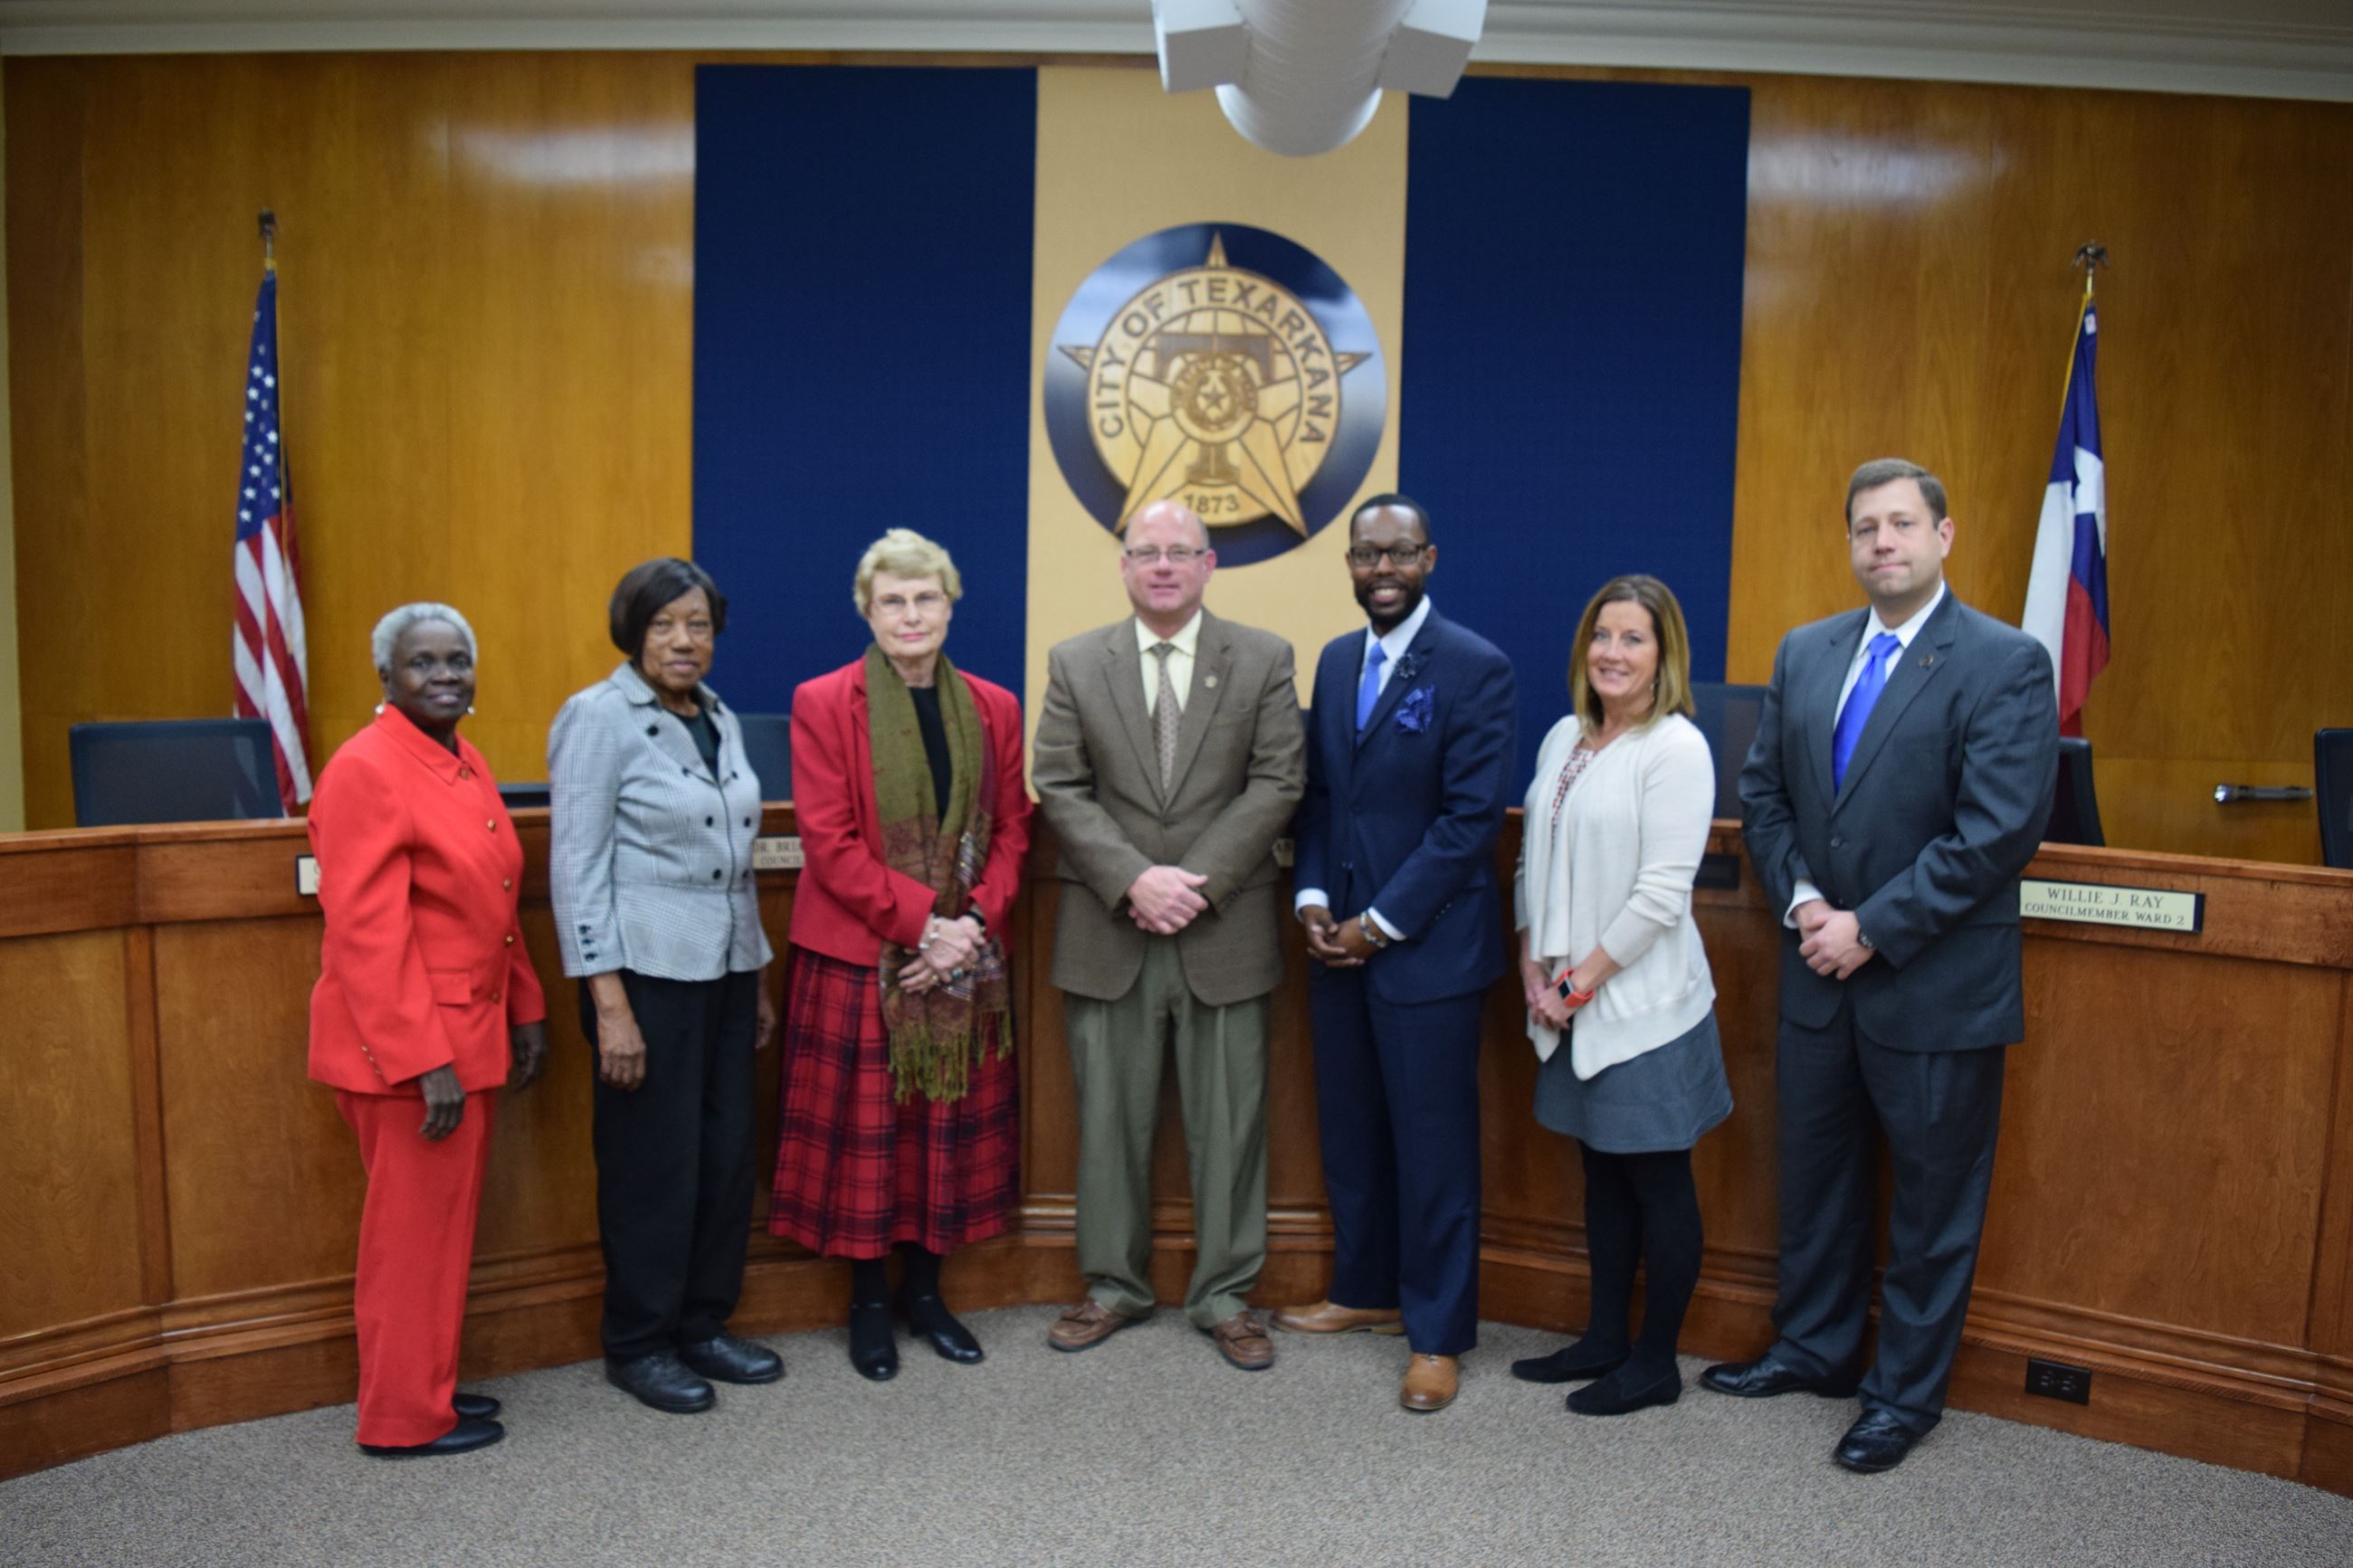 City Council Group Pix 010117